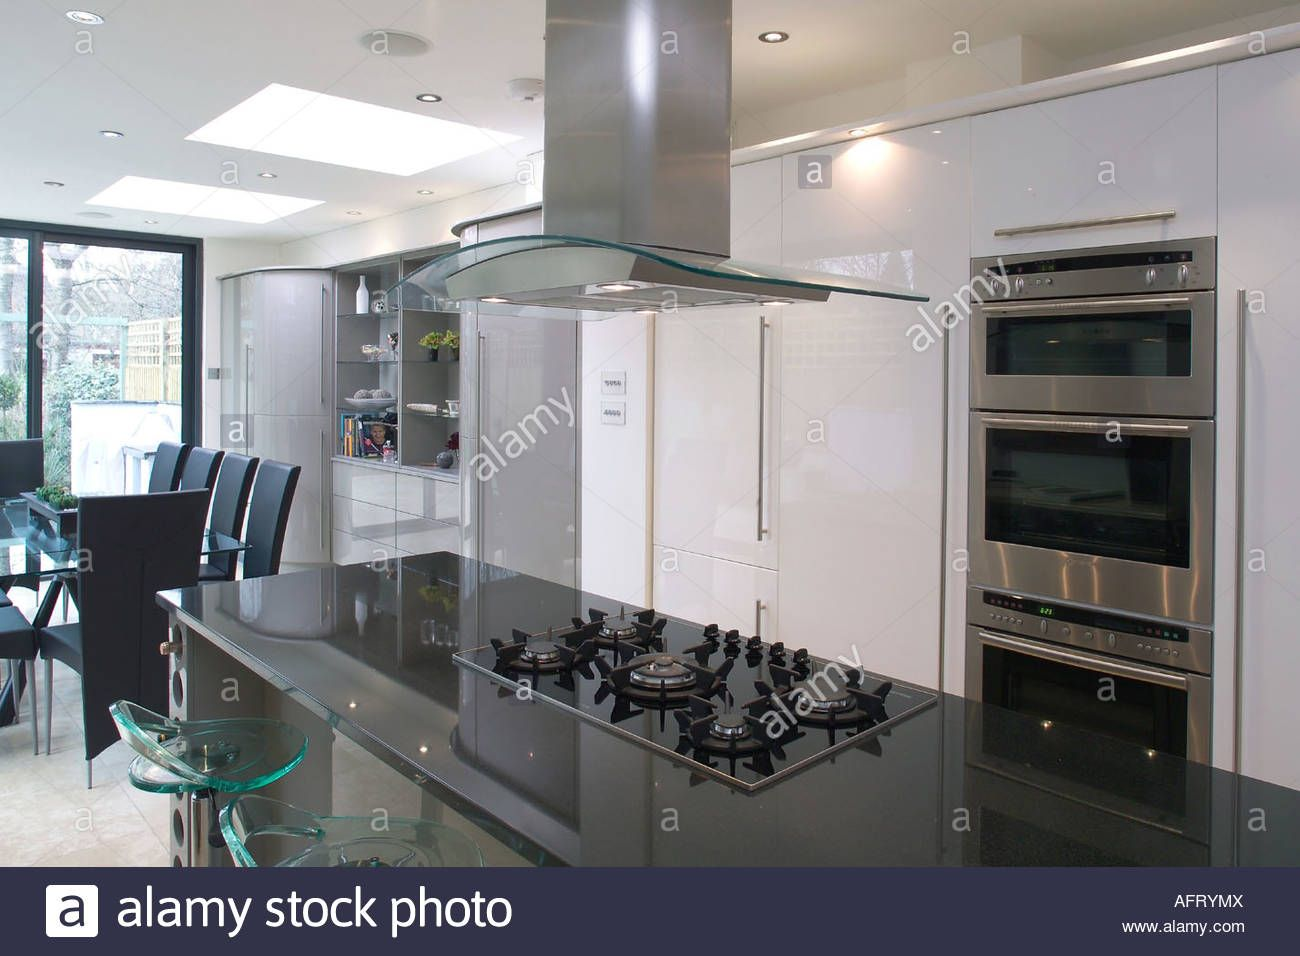 Download This Stock Image Extractor Fan Above Hob In Black Granite Island Unit In Modern Openplan Kitchen Modern Kitchen Island Wall Mount Oven Extractor Fans